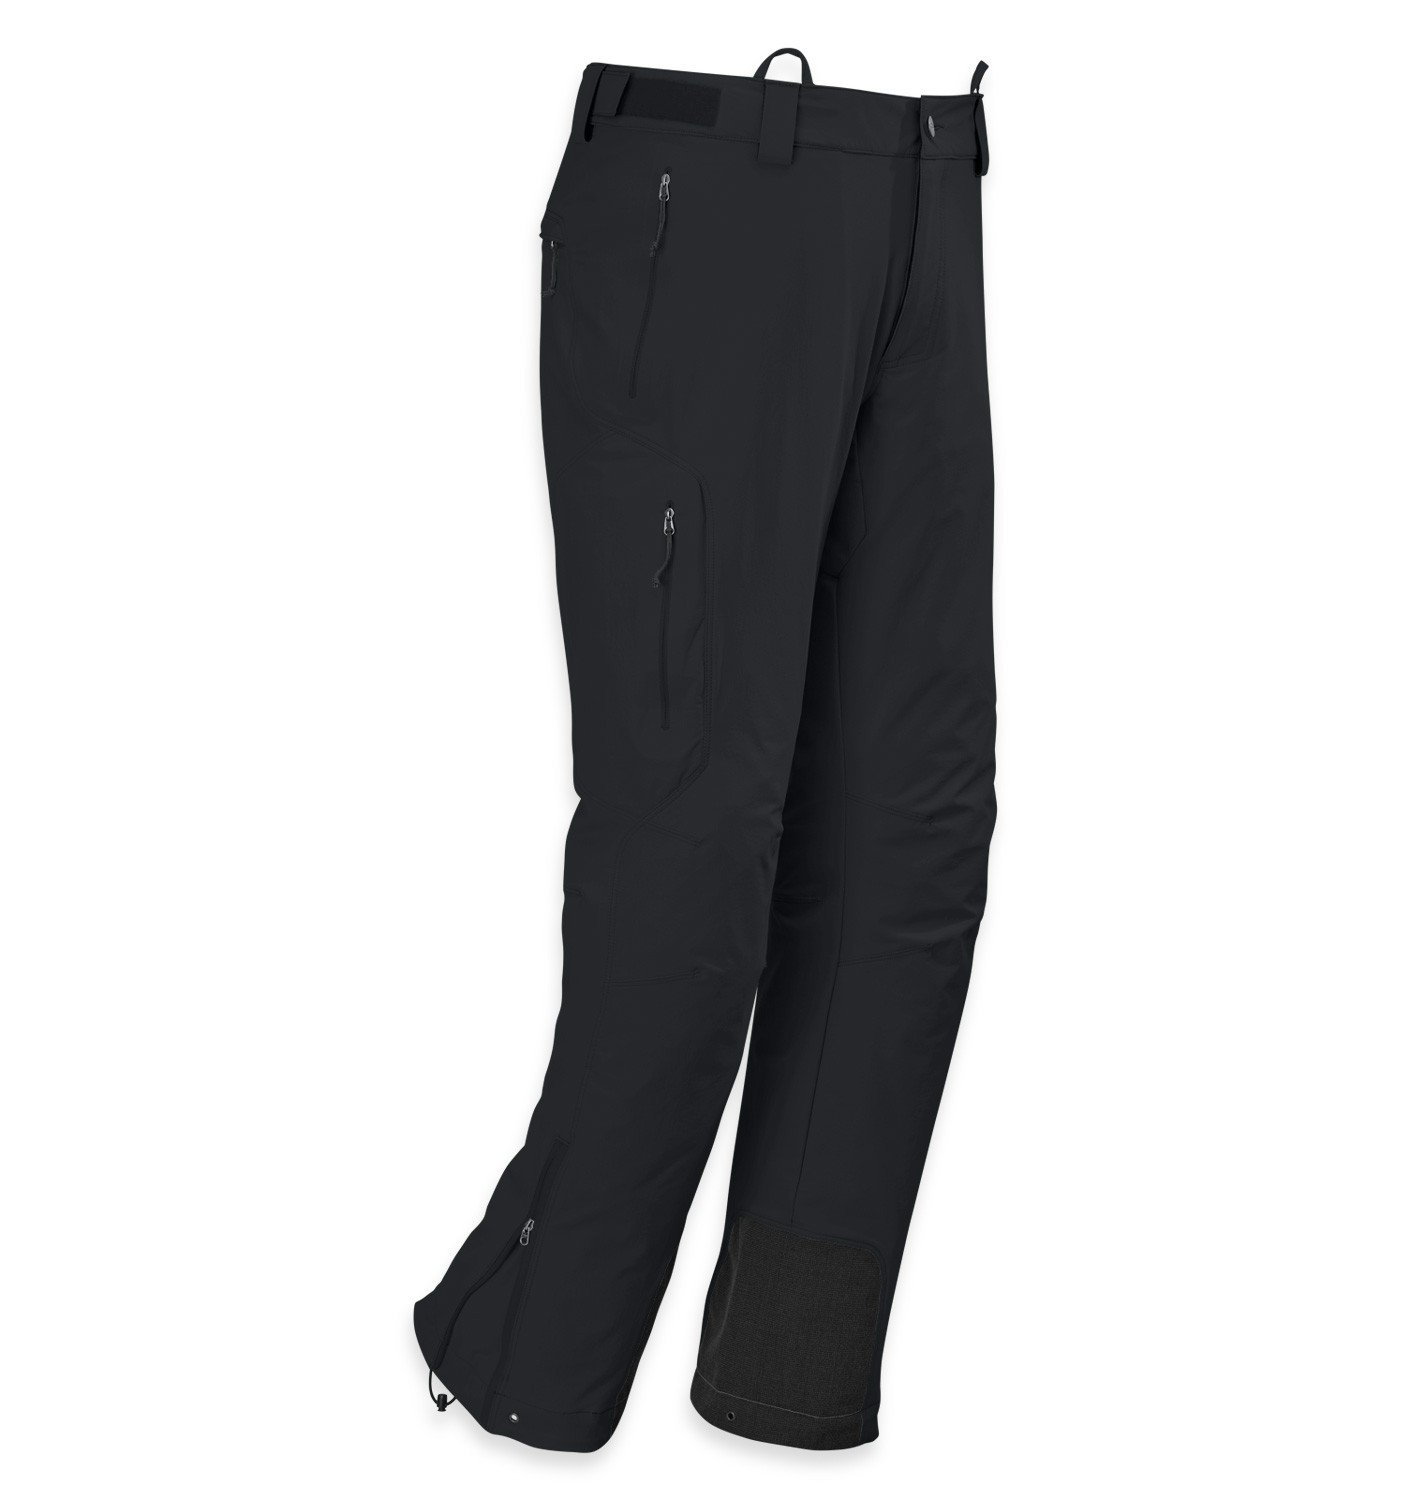 Outdoor Research Outdoor Research Men's Cirque Pant